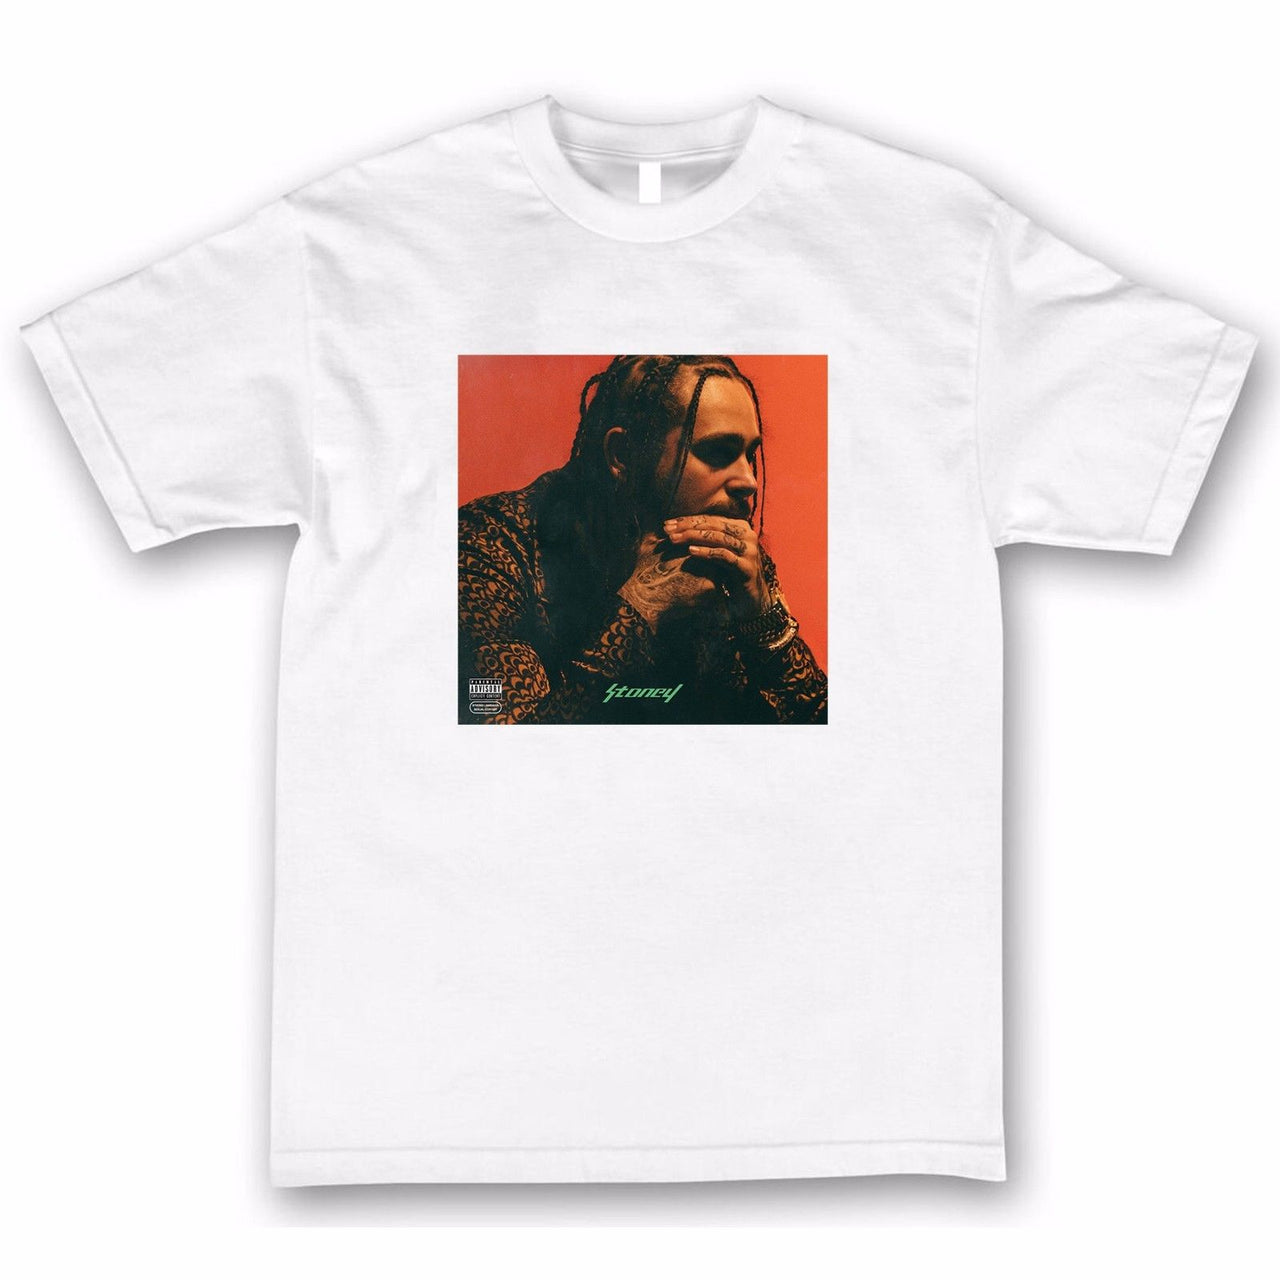 Post Malone Stoney Inspired - Tee